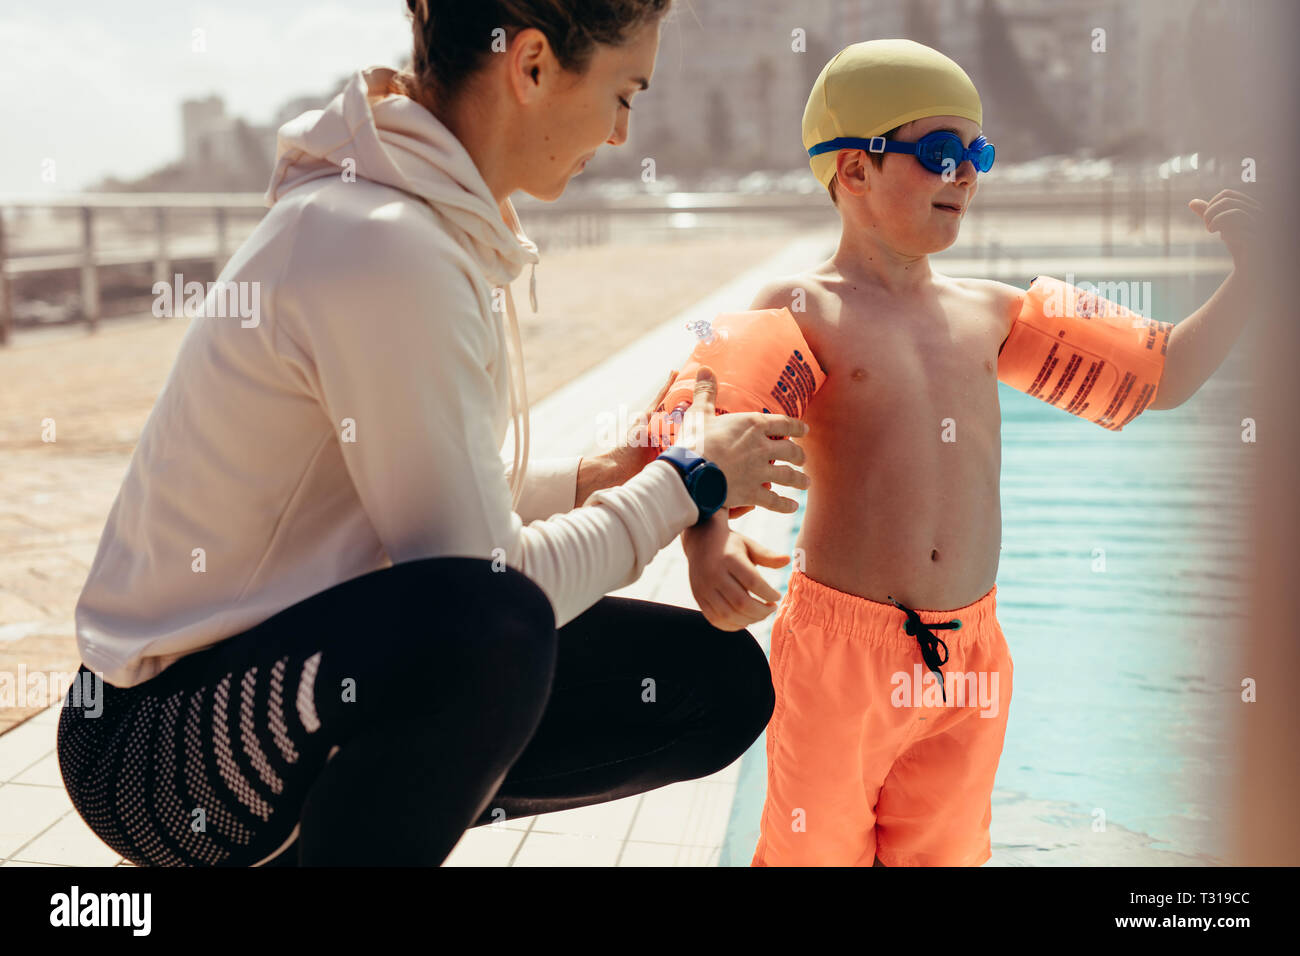 Female coach helping boy put on sleeve floats by poolside. Woman putting sleeves floats on boy's hand for swimming lessons at pool. Stock Photo